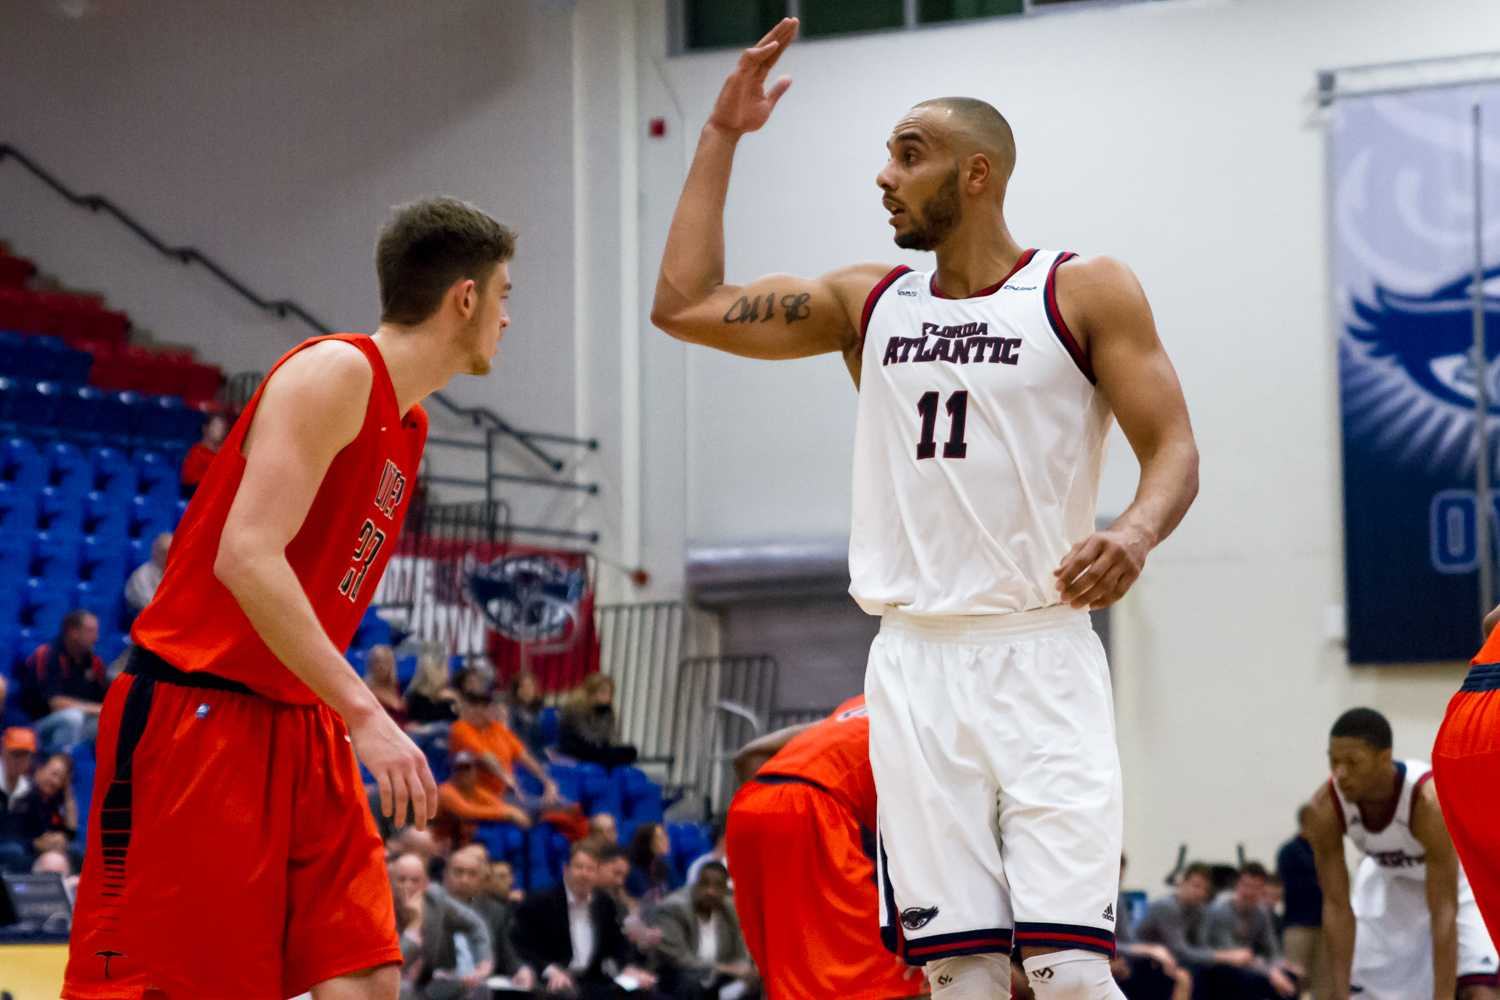 Former center Justin Raffington became the first Owl under Michael Curry to sign professionally, doing so with  Gladiators Trier in Germany. Photo by Idalis Streat | Contributing Photographer